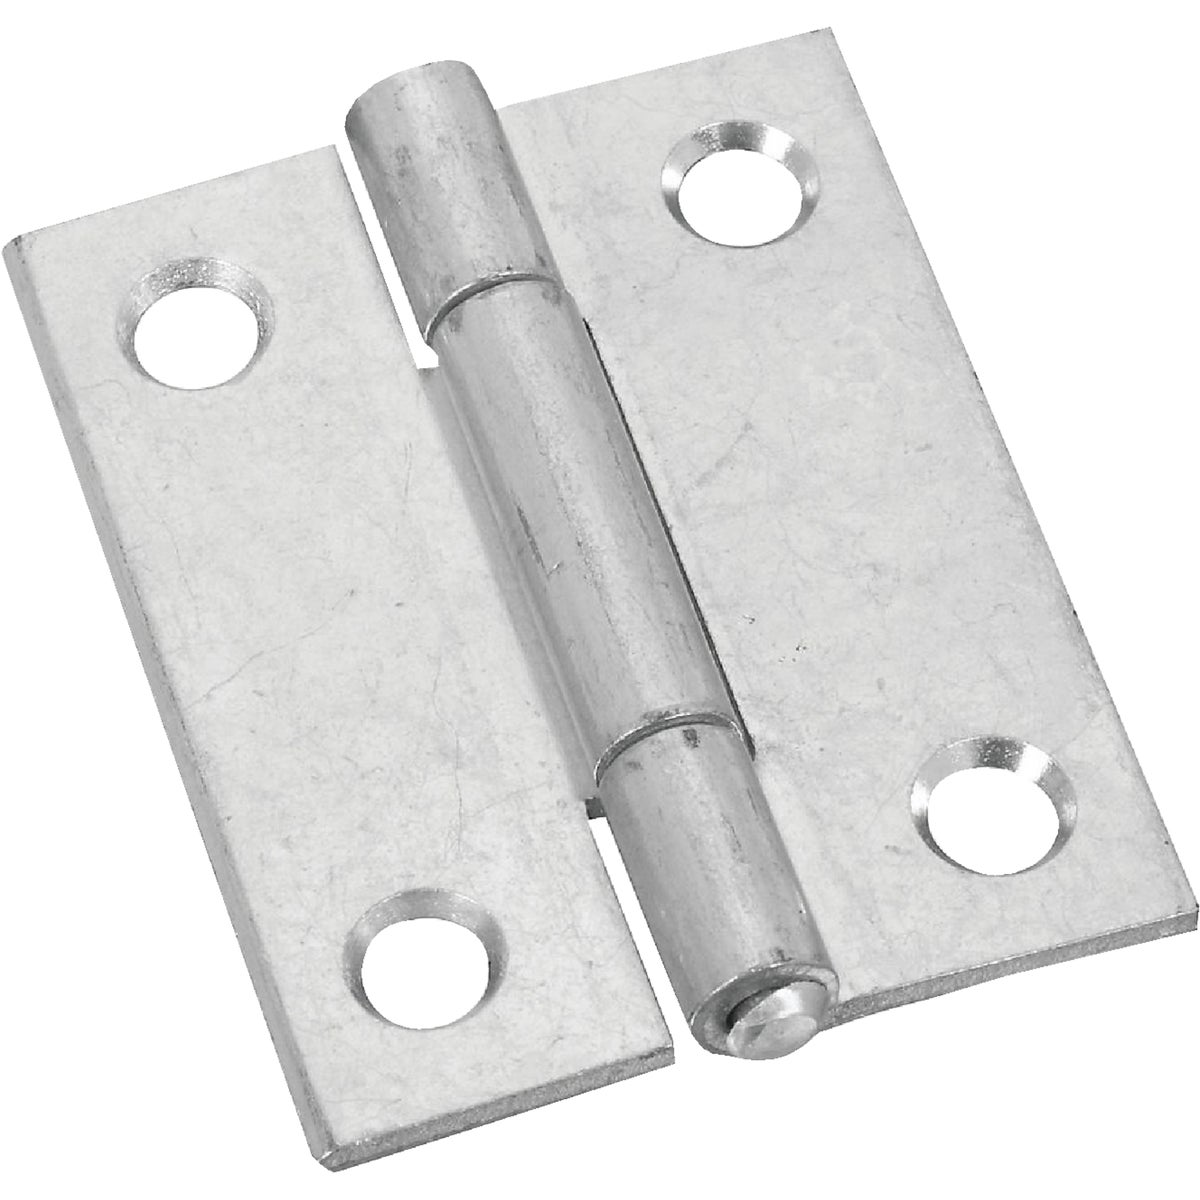 "2"" ZINC PIN HINGE - N146159 by National Mfg Co"